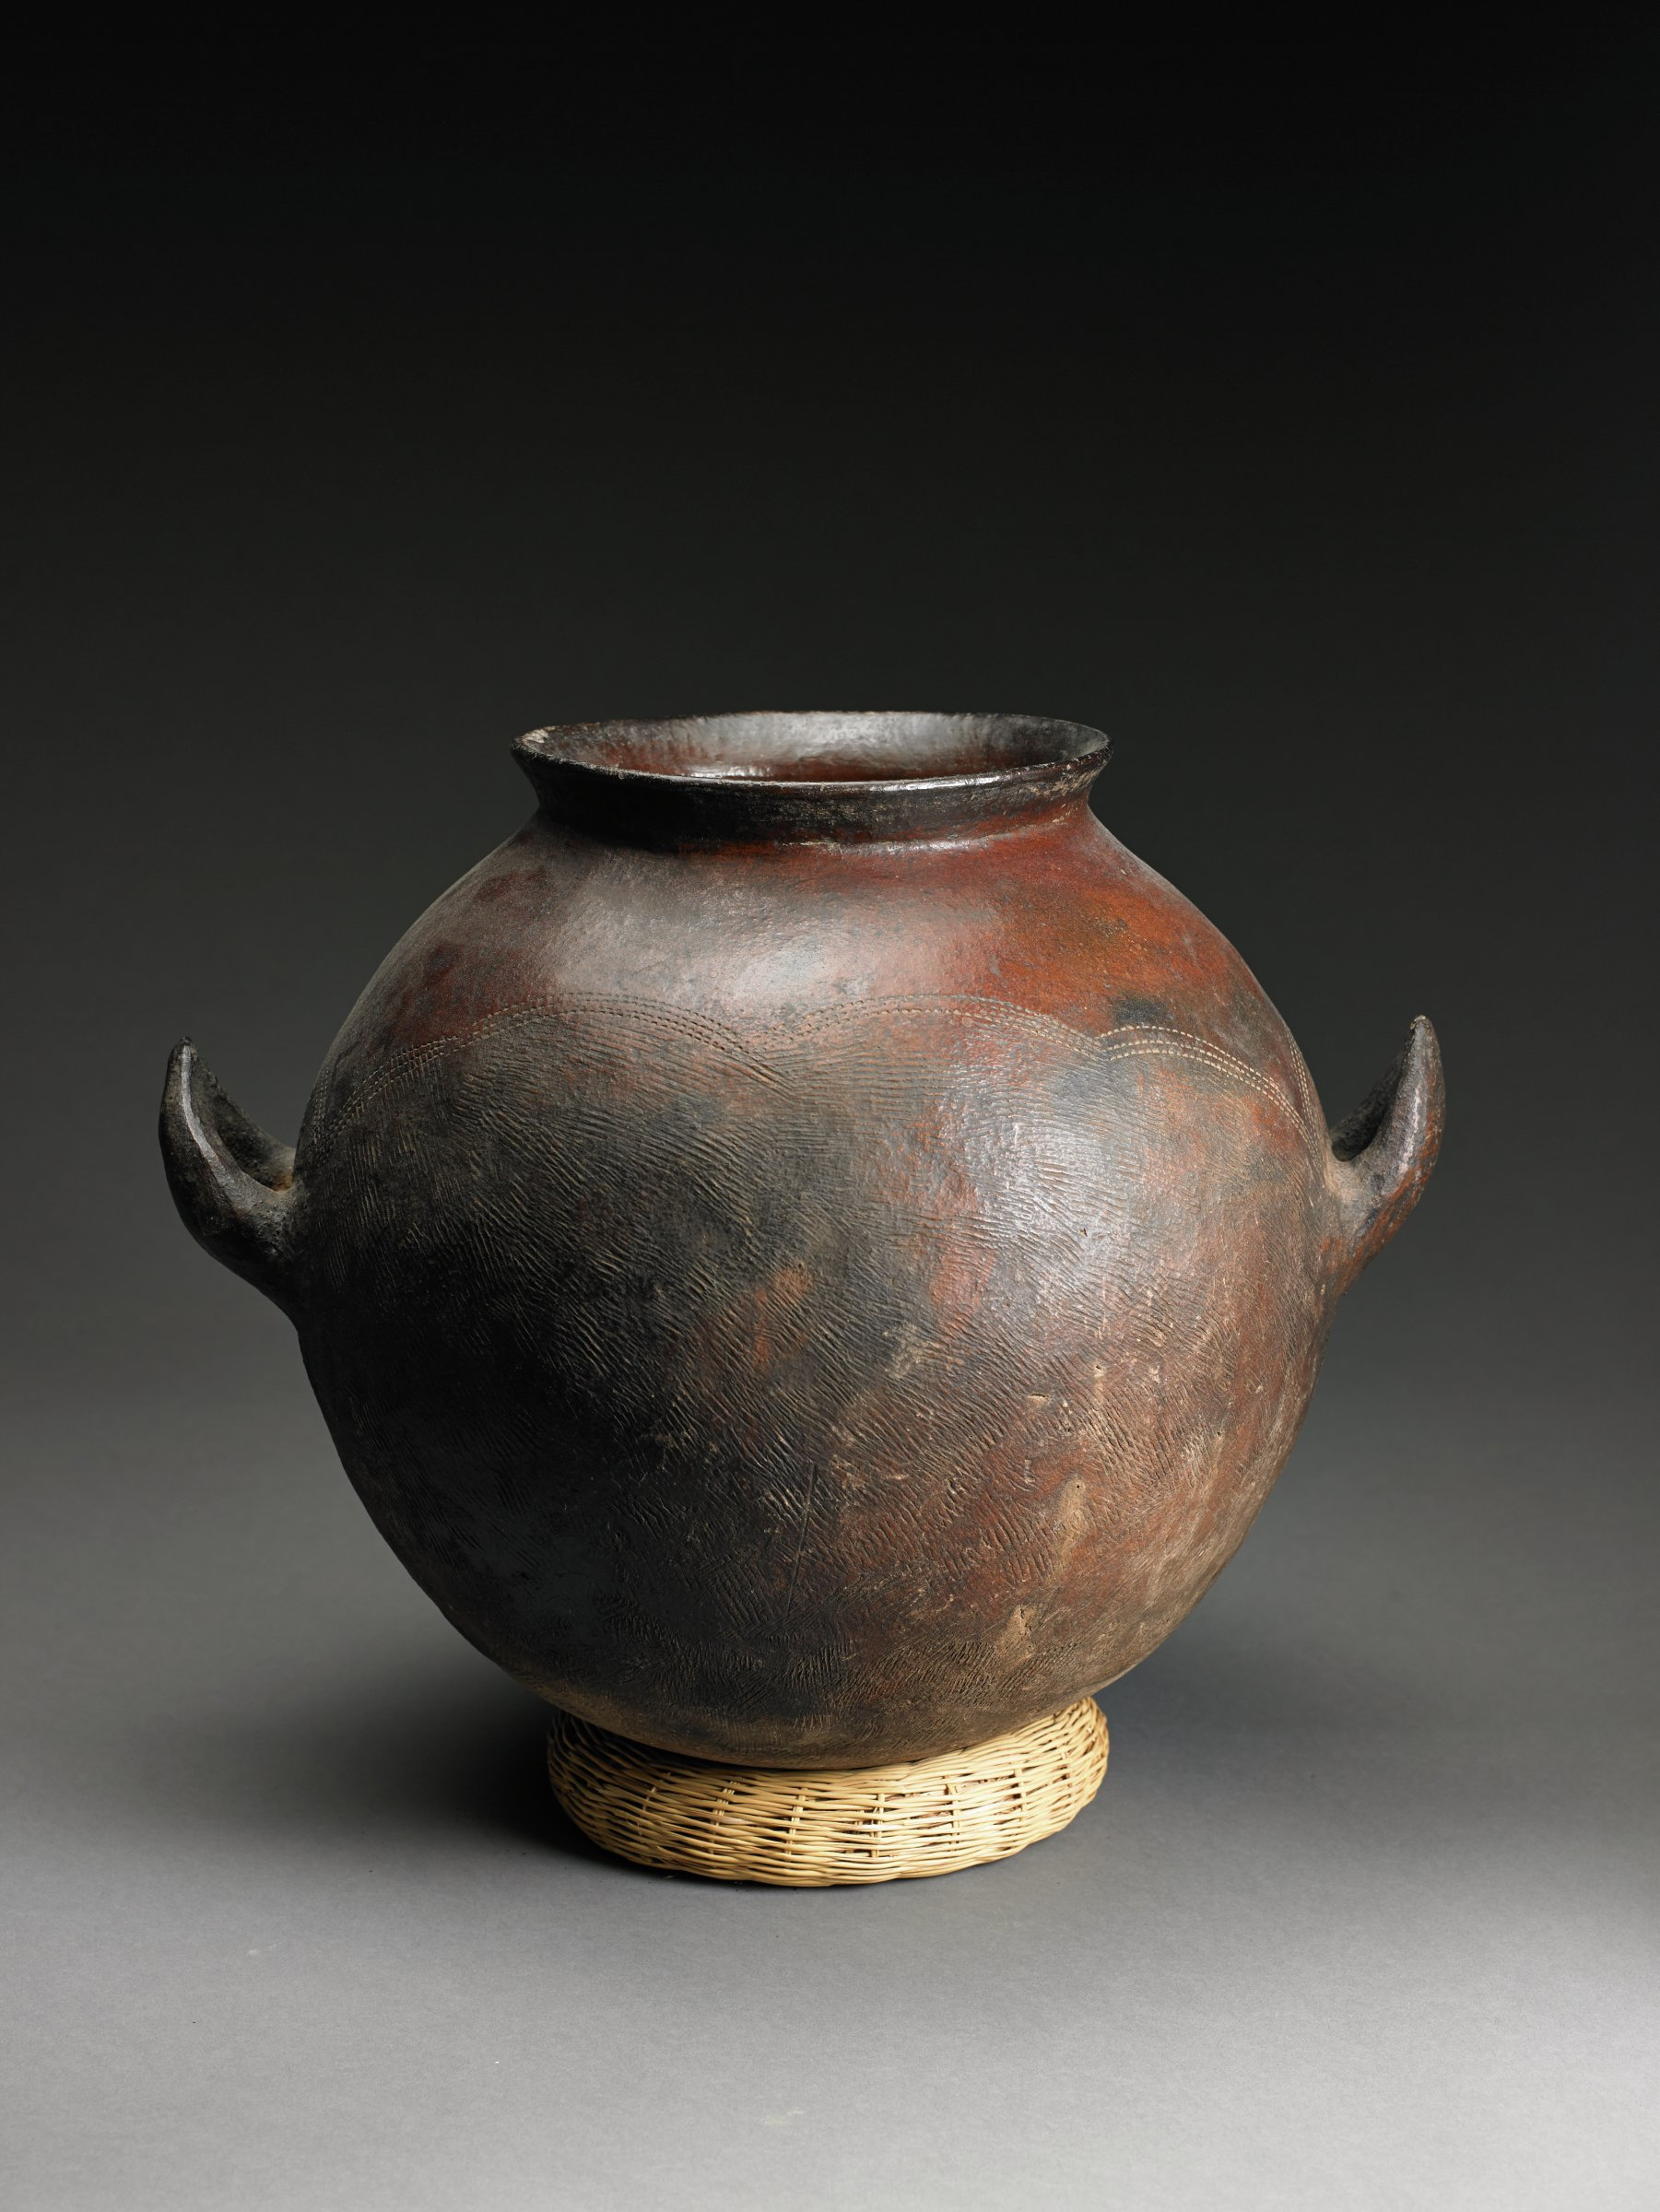 Dark-brown, spherical vessel has lug handles on the sides and short, vertical neck; shoulder has incised arcs with overall roulette pattern below.